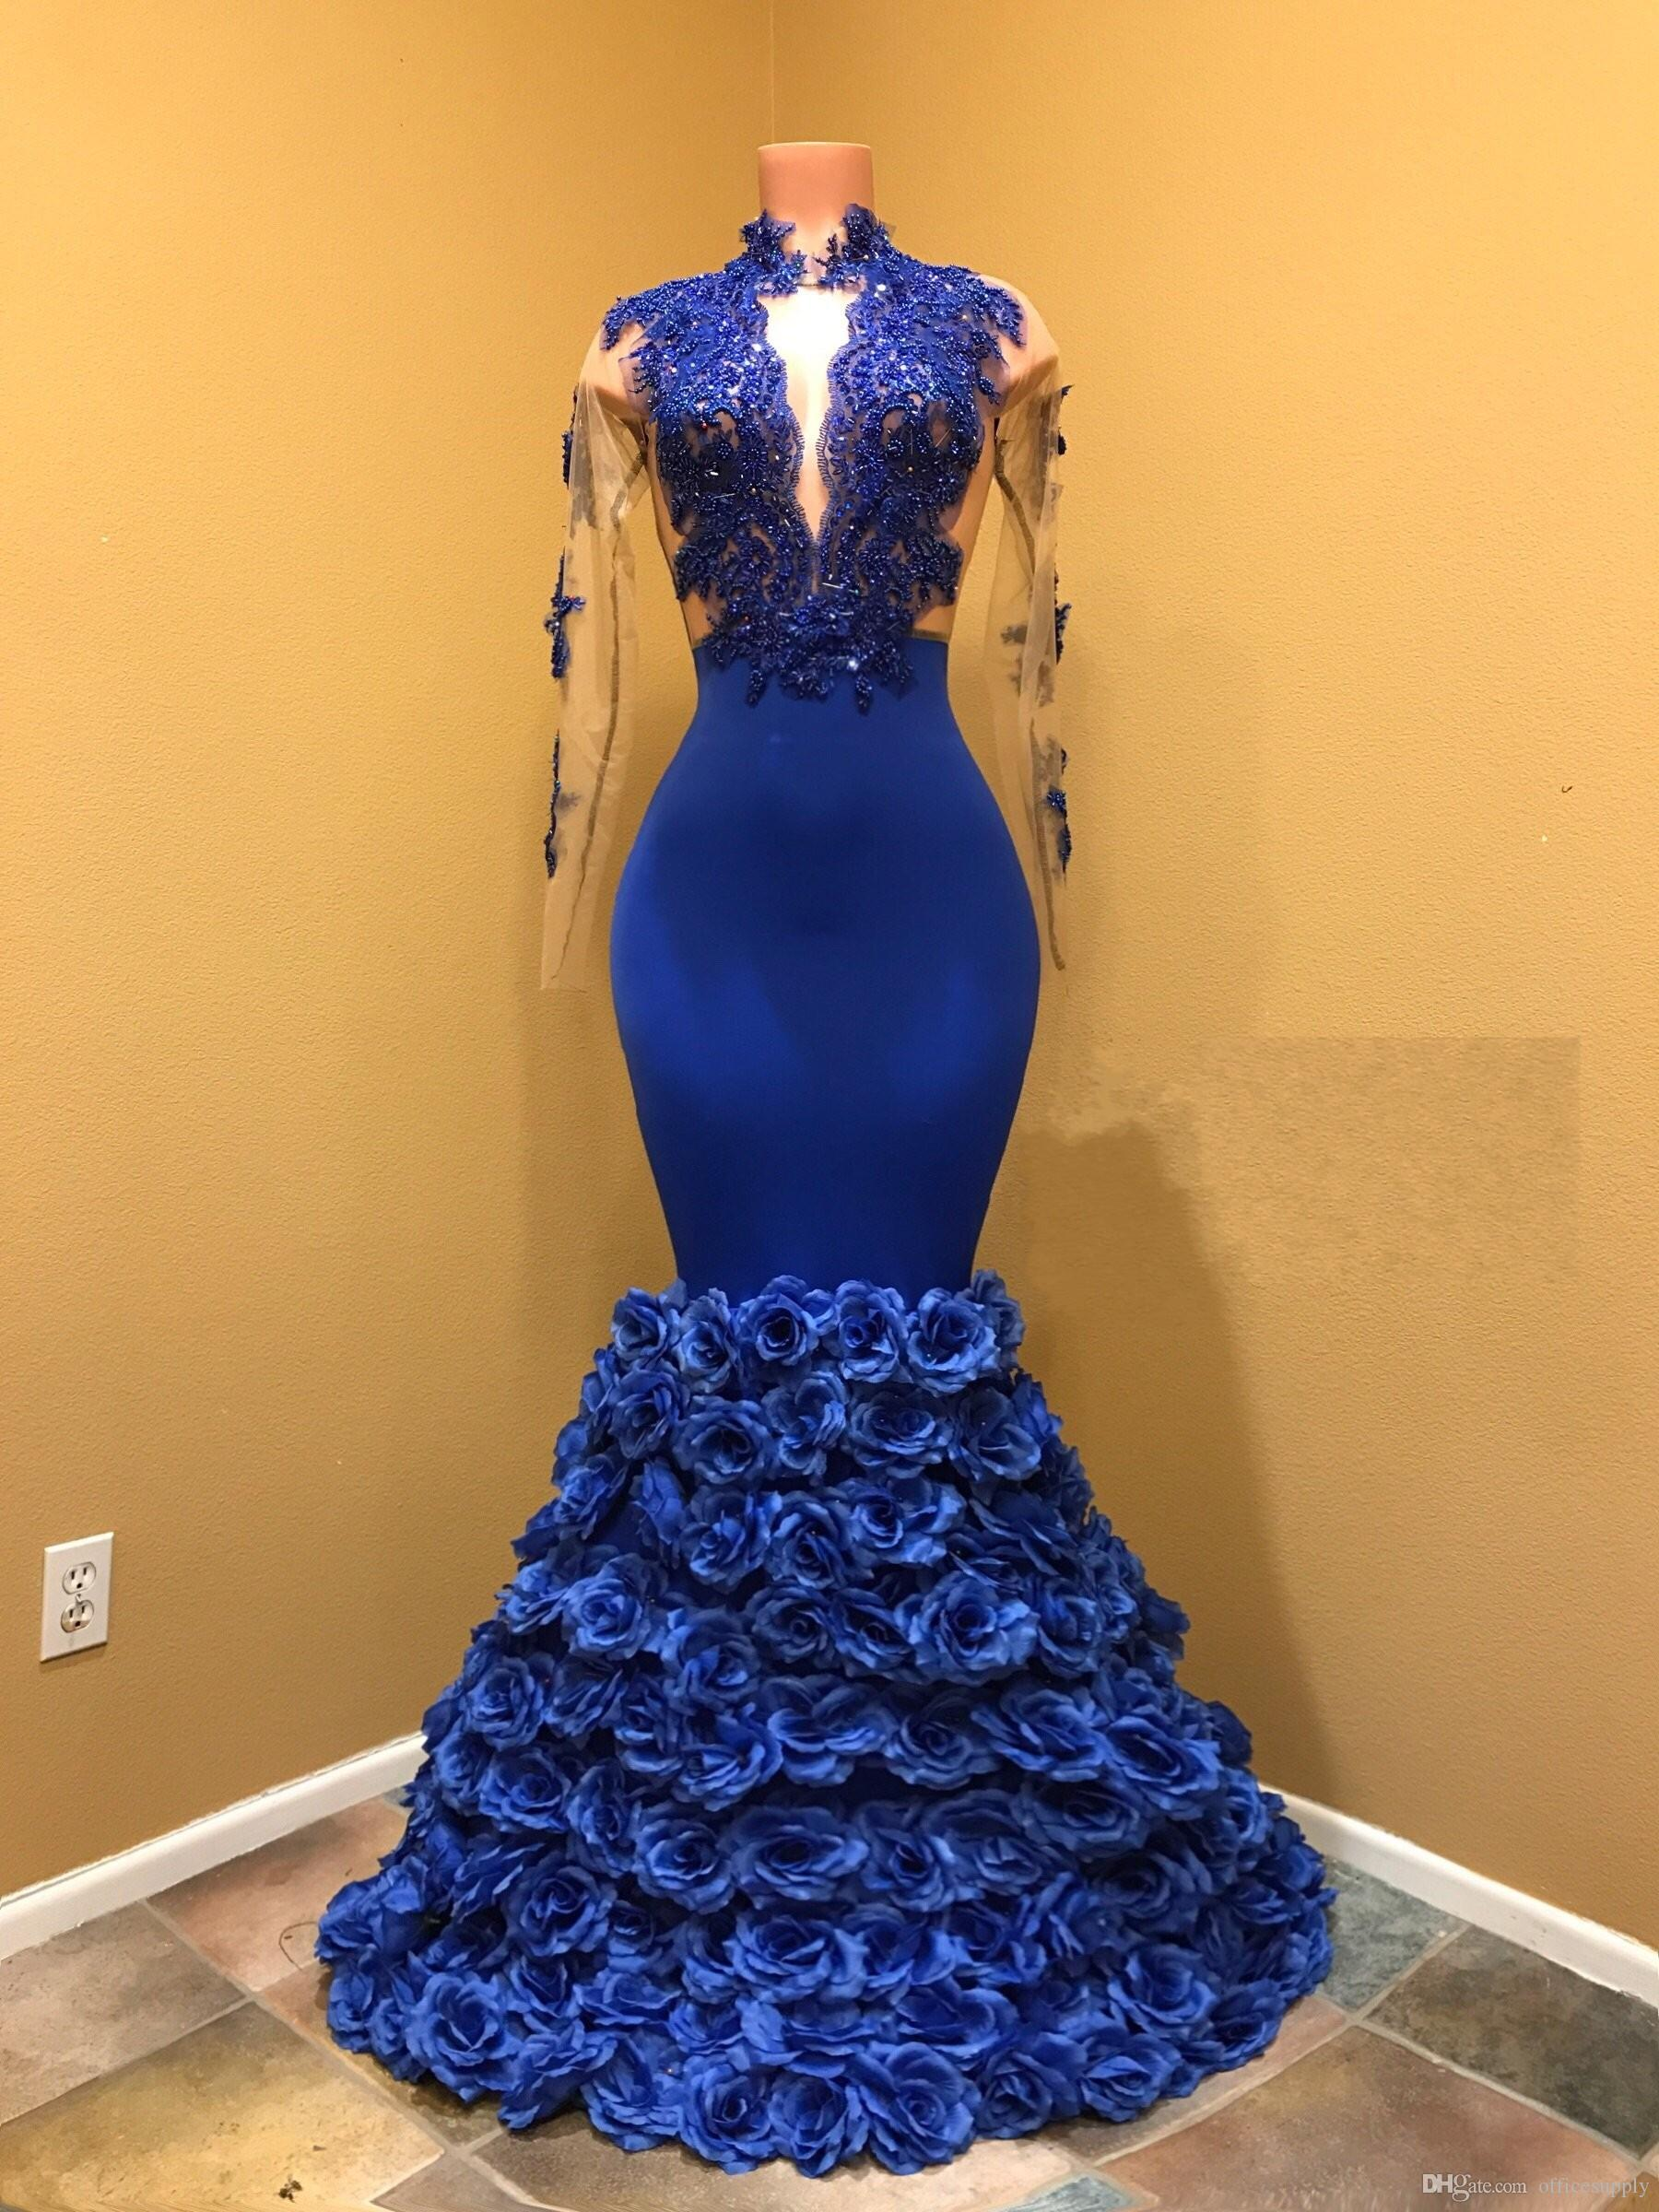 2019 Royal Blue Mermaid Prom Dresses With Rose Floral Flowers Sheer Backless Evening Gowns Appliqued Lace Long Sleeves Plus Size Party Gown